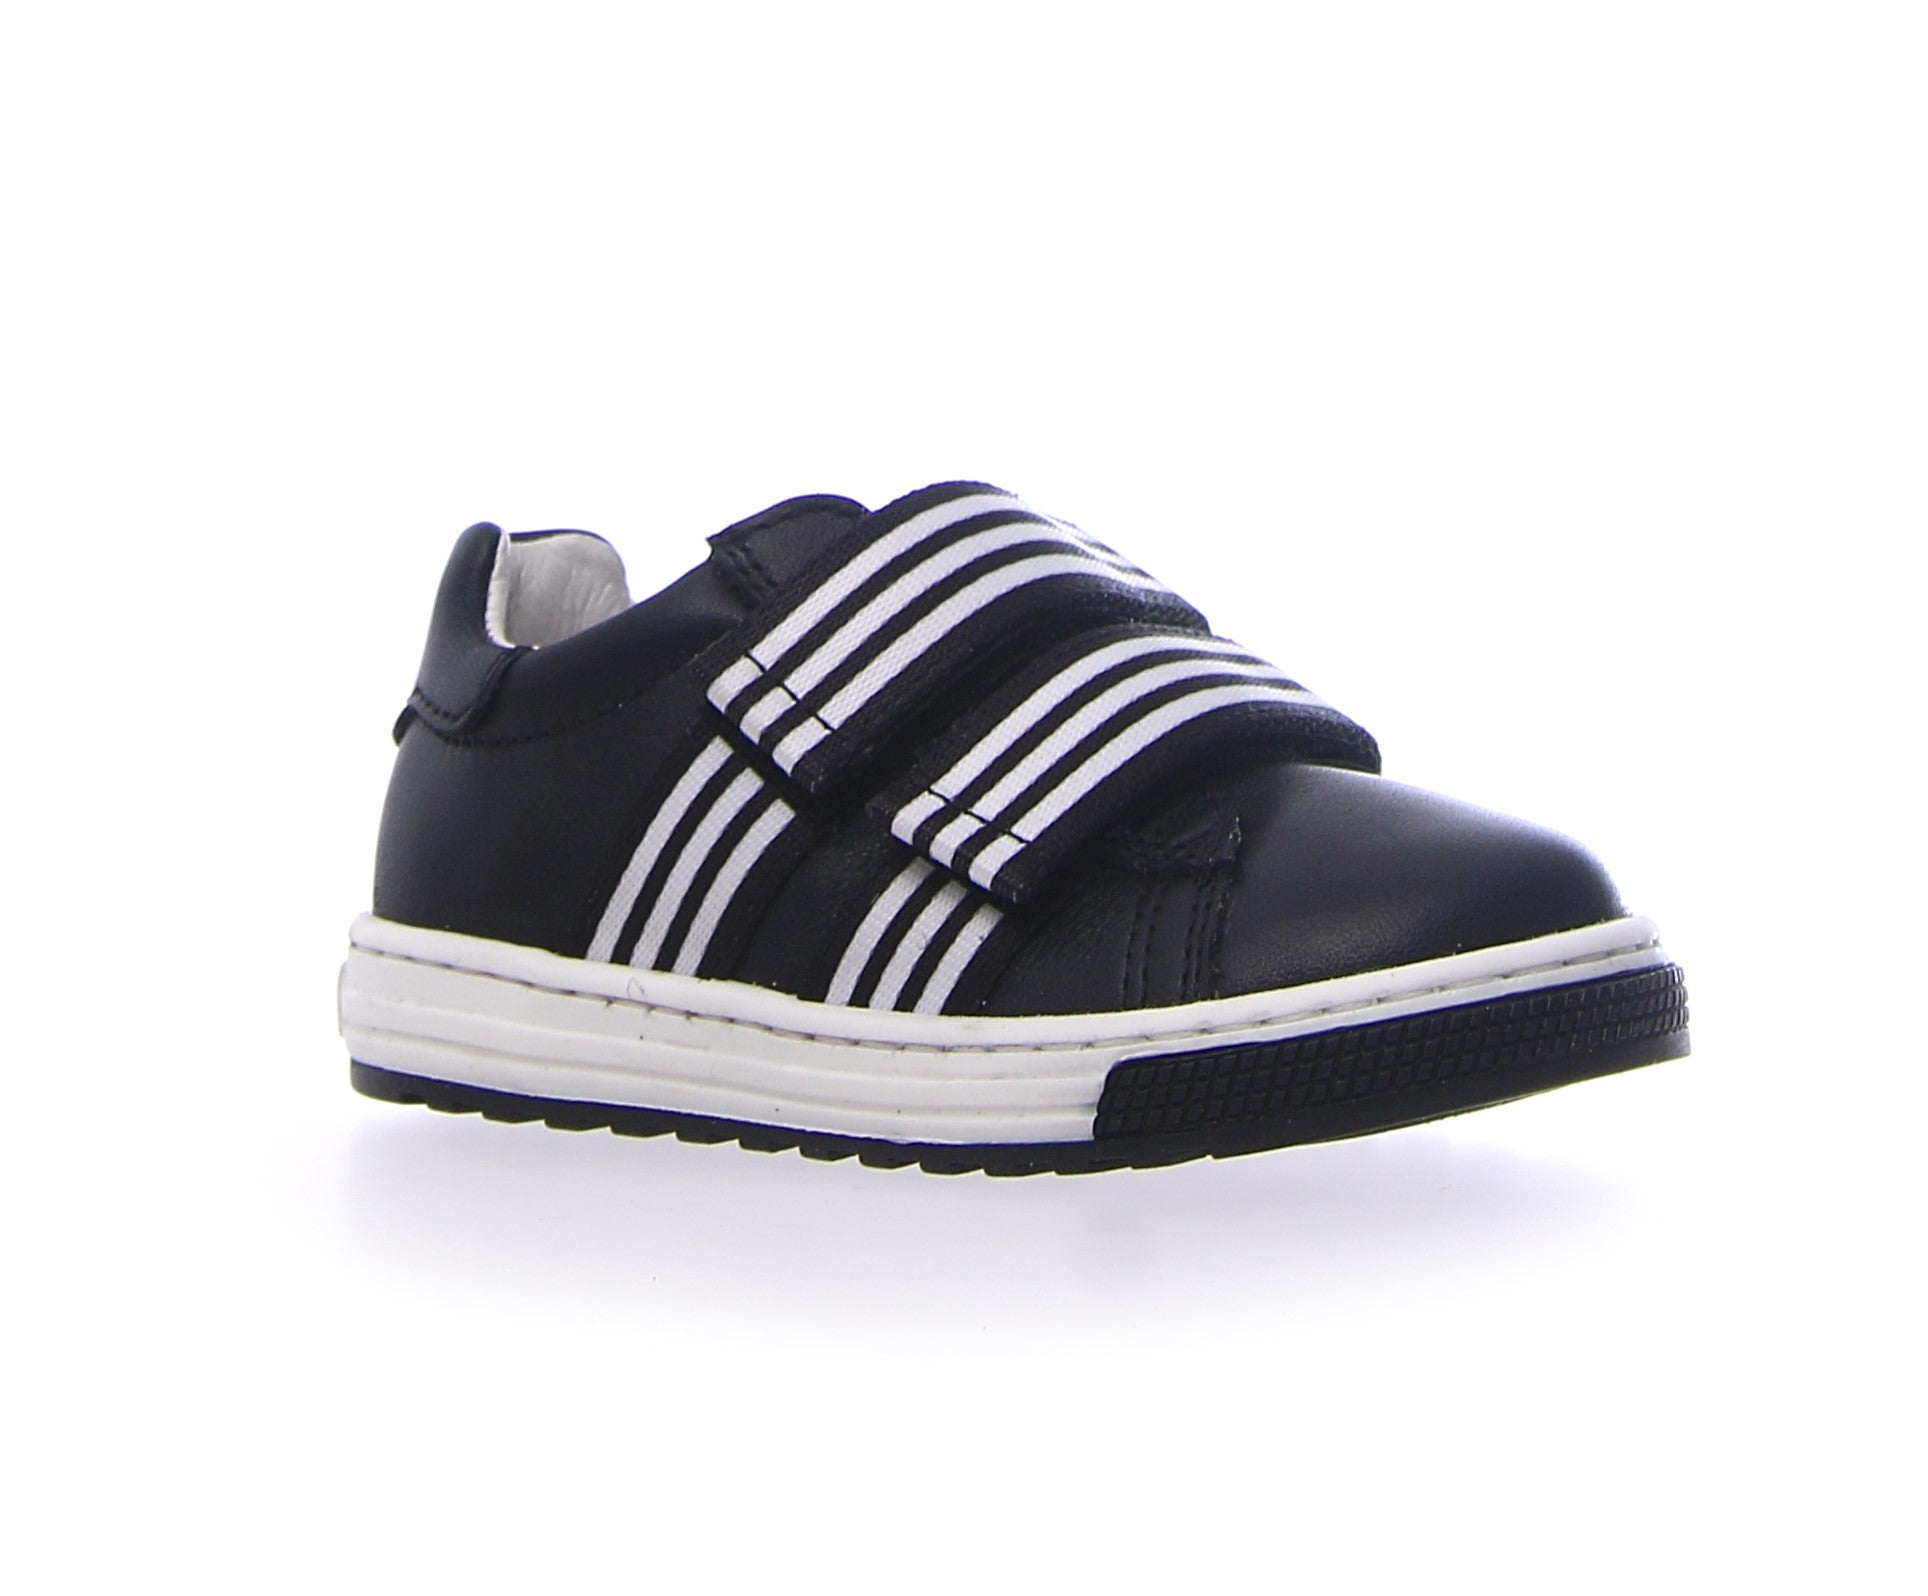 Naturino Black Sneaker with Striped Double Velcro